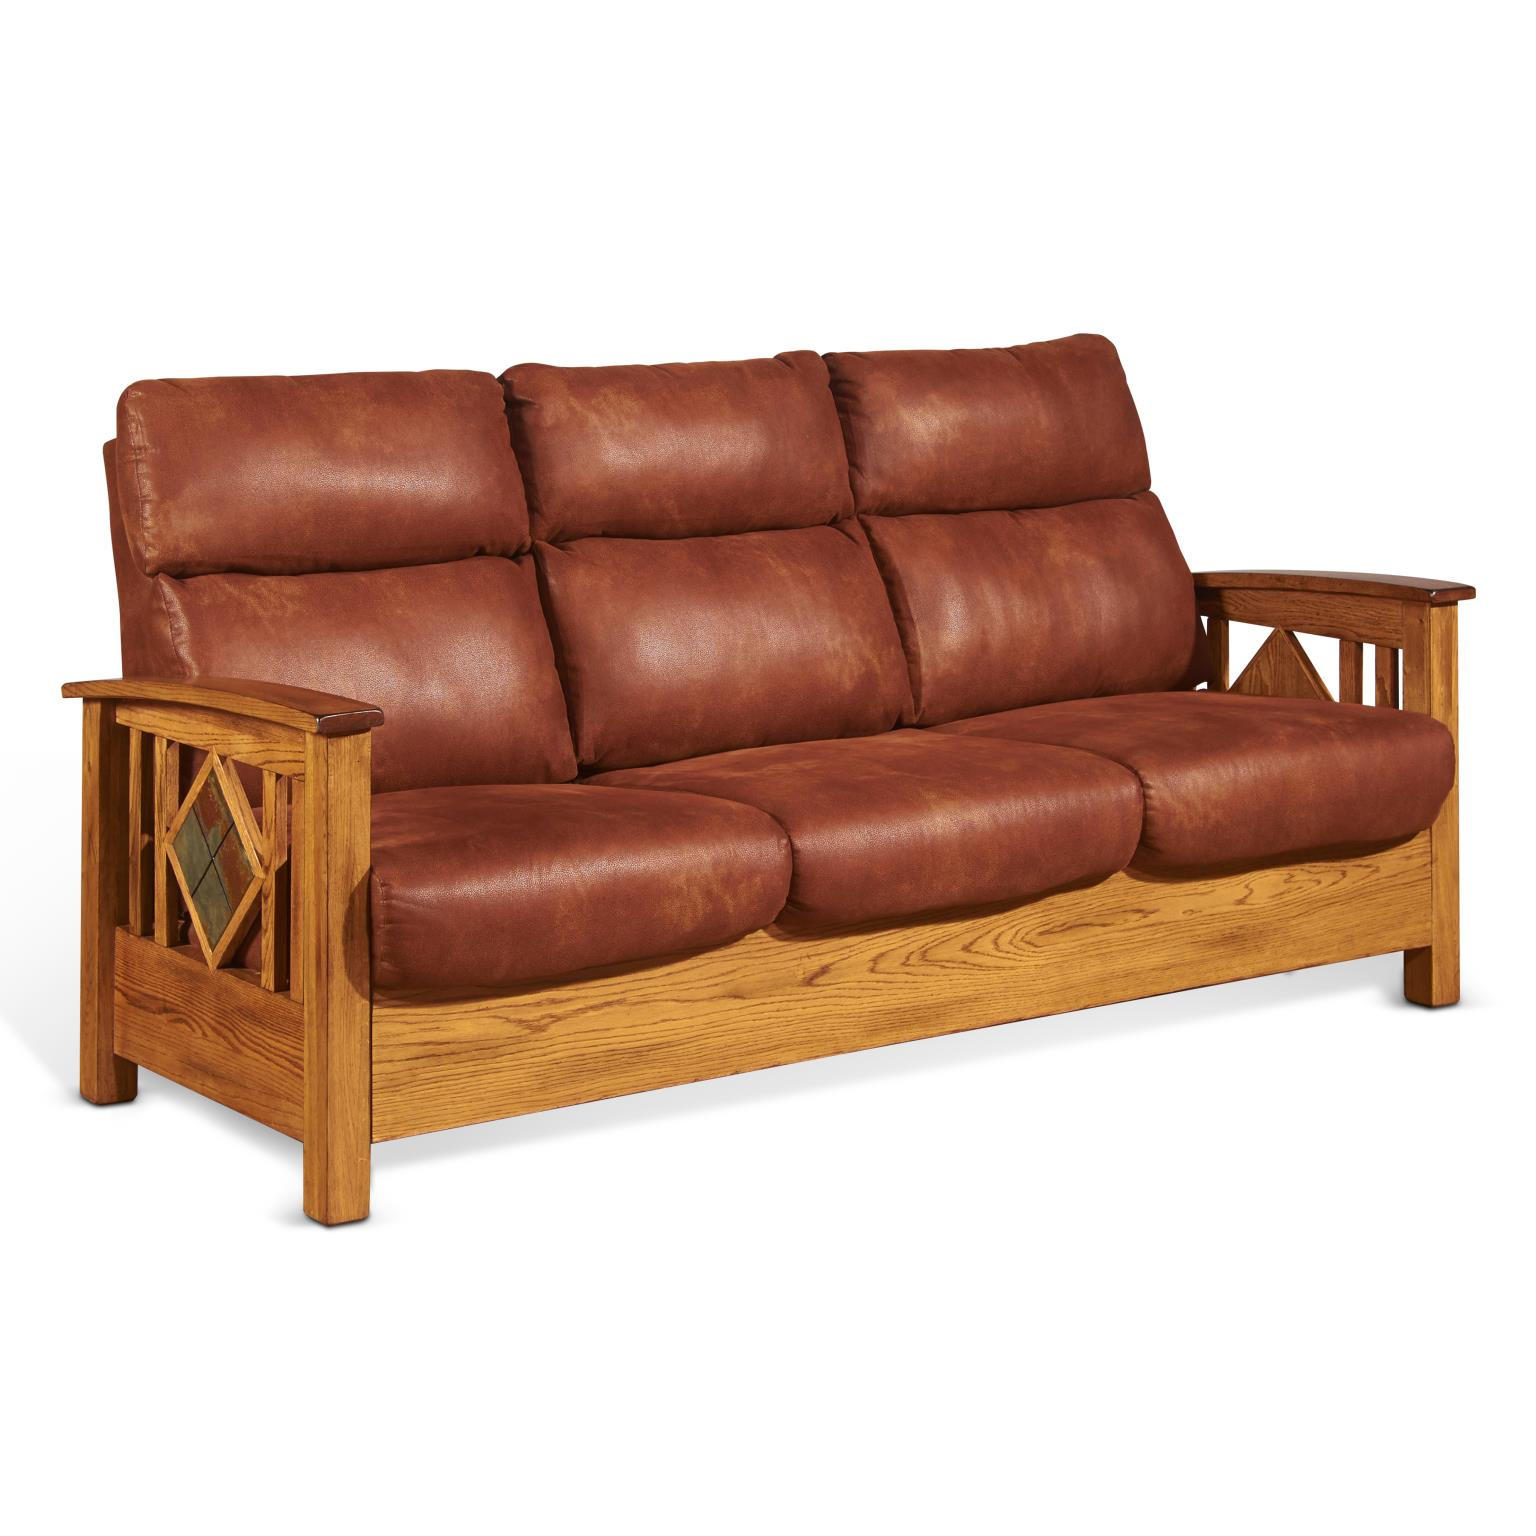 Sedona Stationary Sofa Image